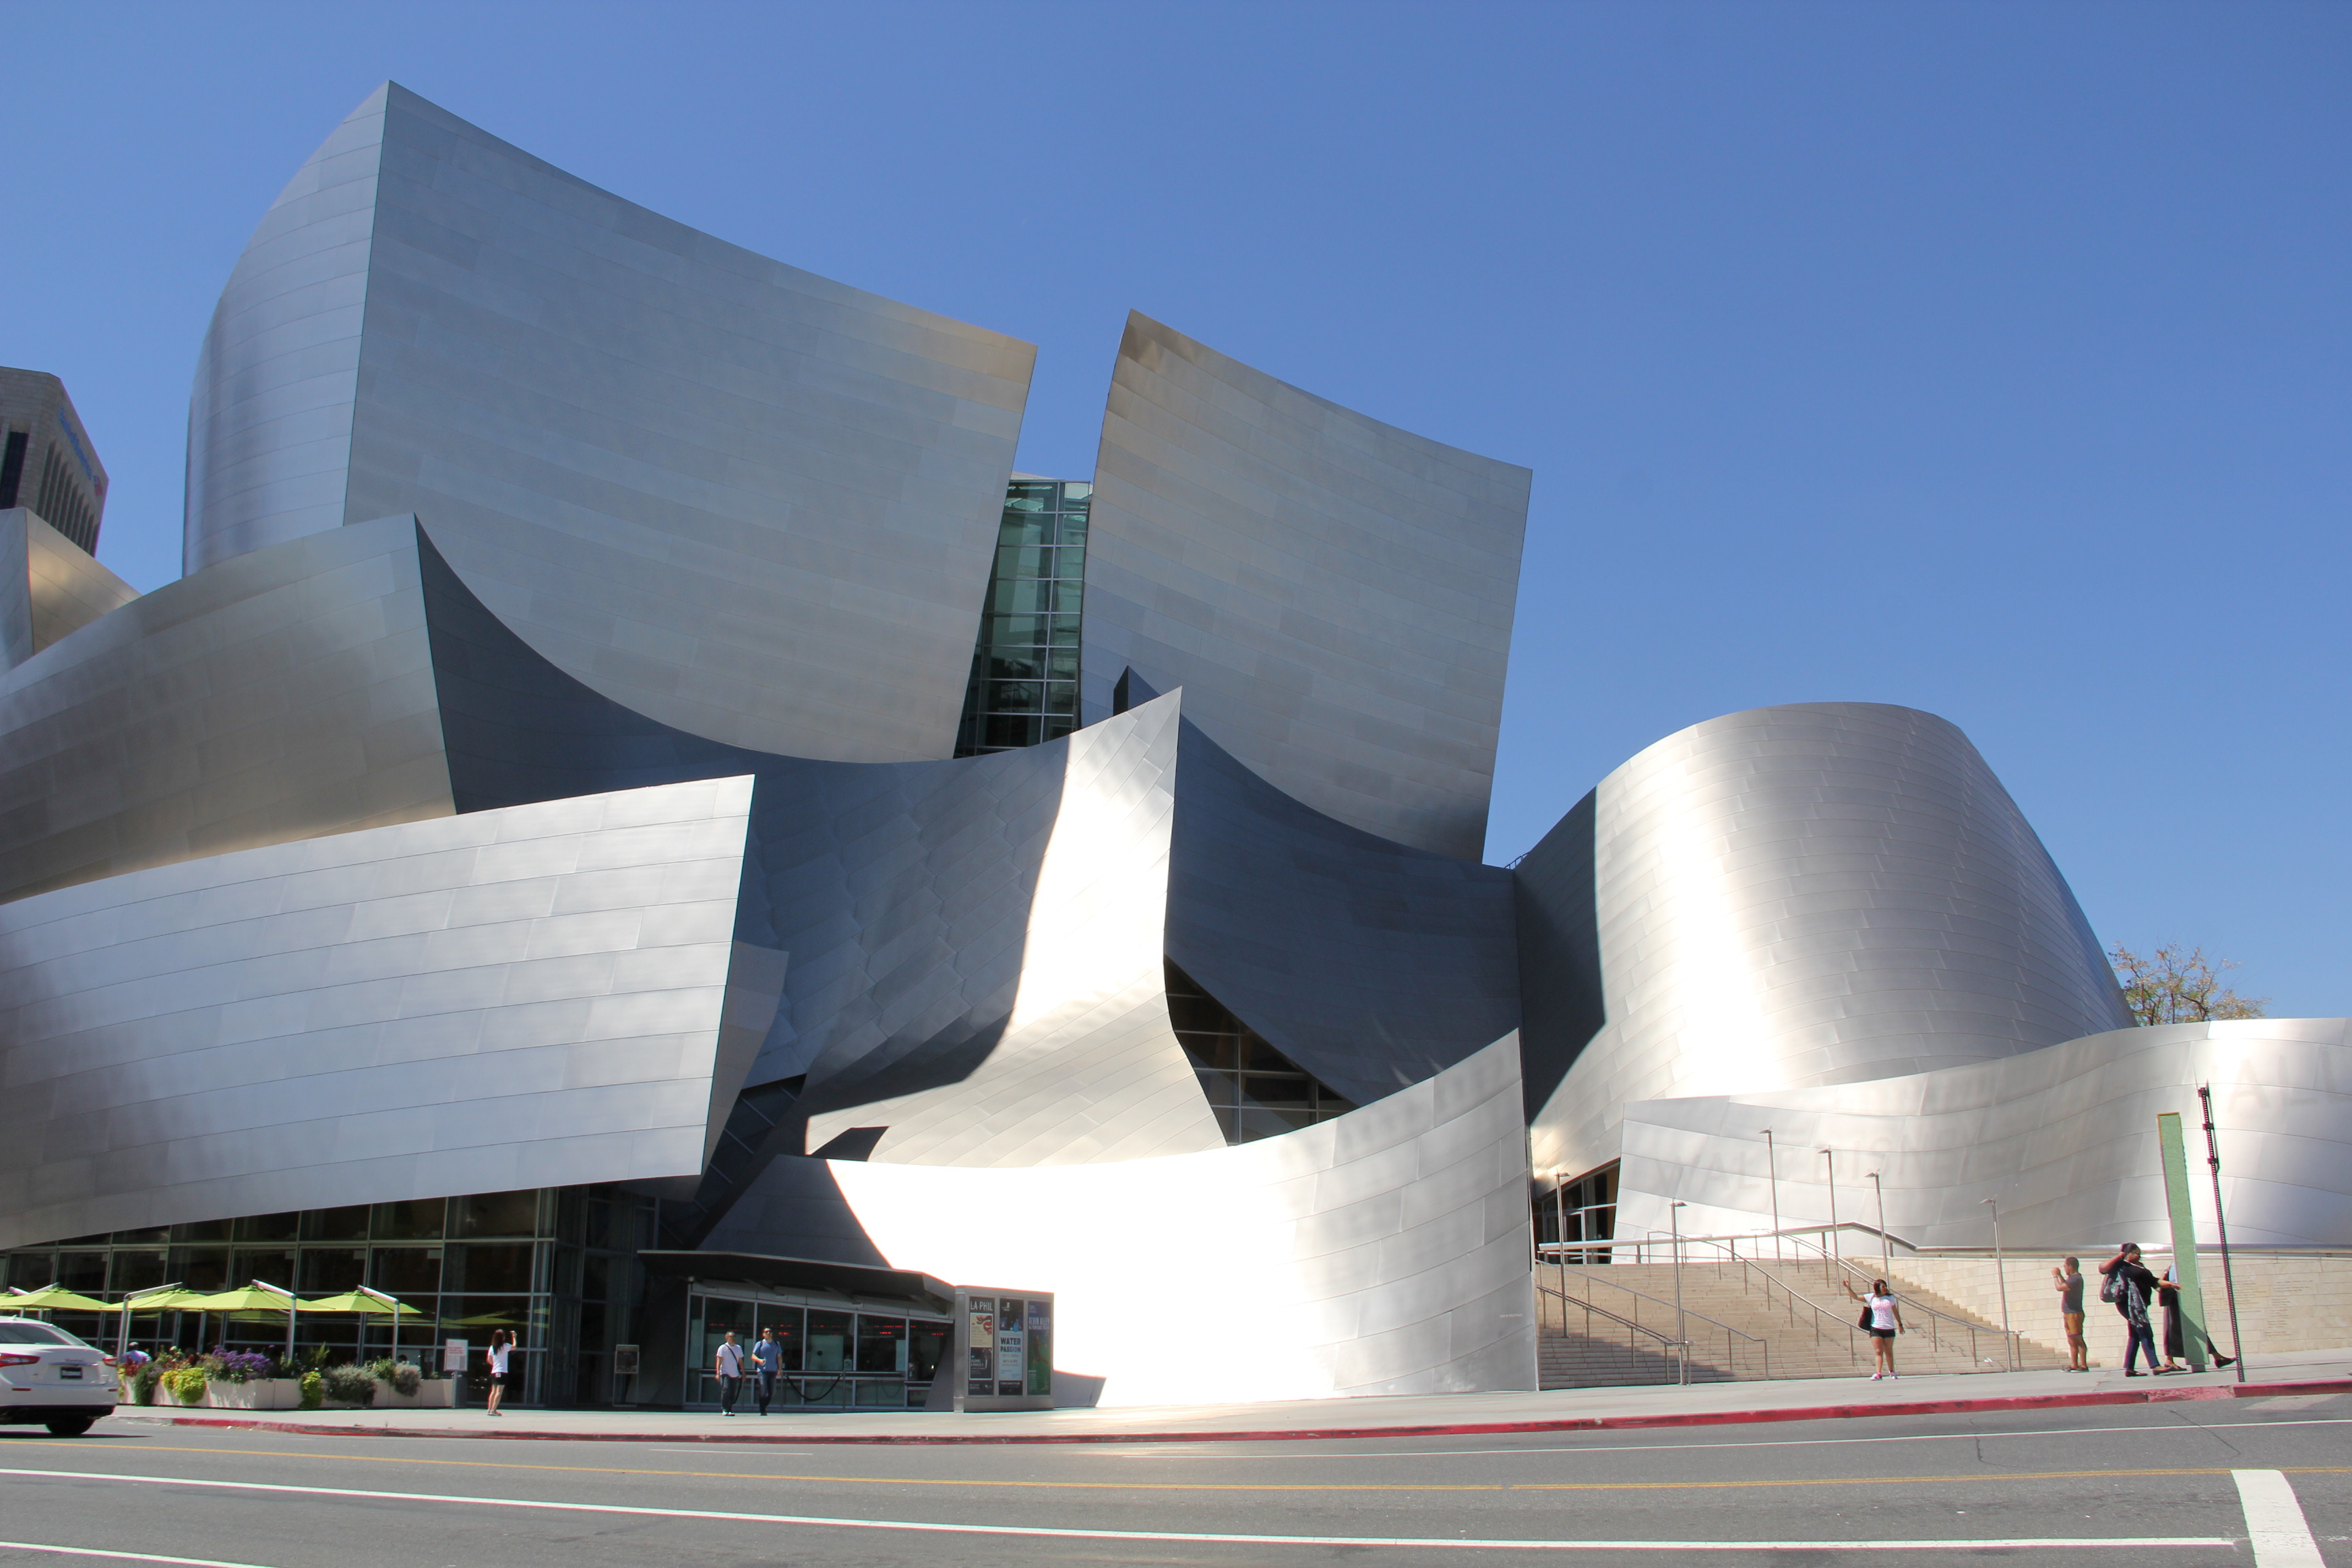 TAKE A FREE TOUR OF DTLA'S MUSIC CENTER INCLUDING WALT